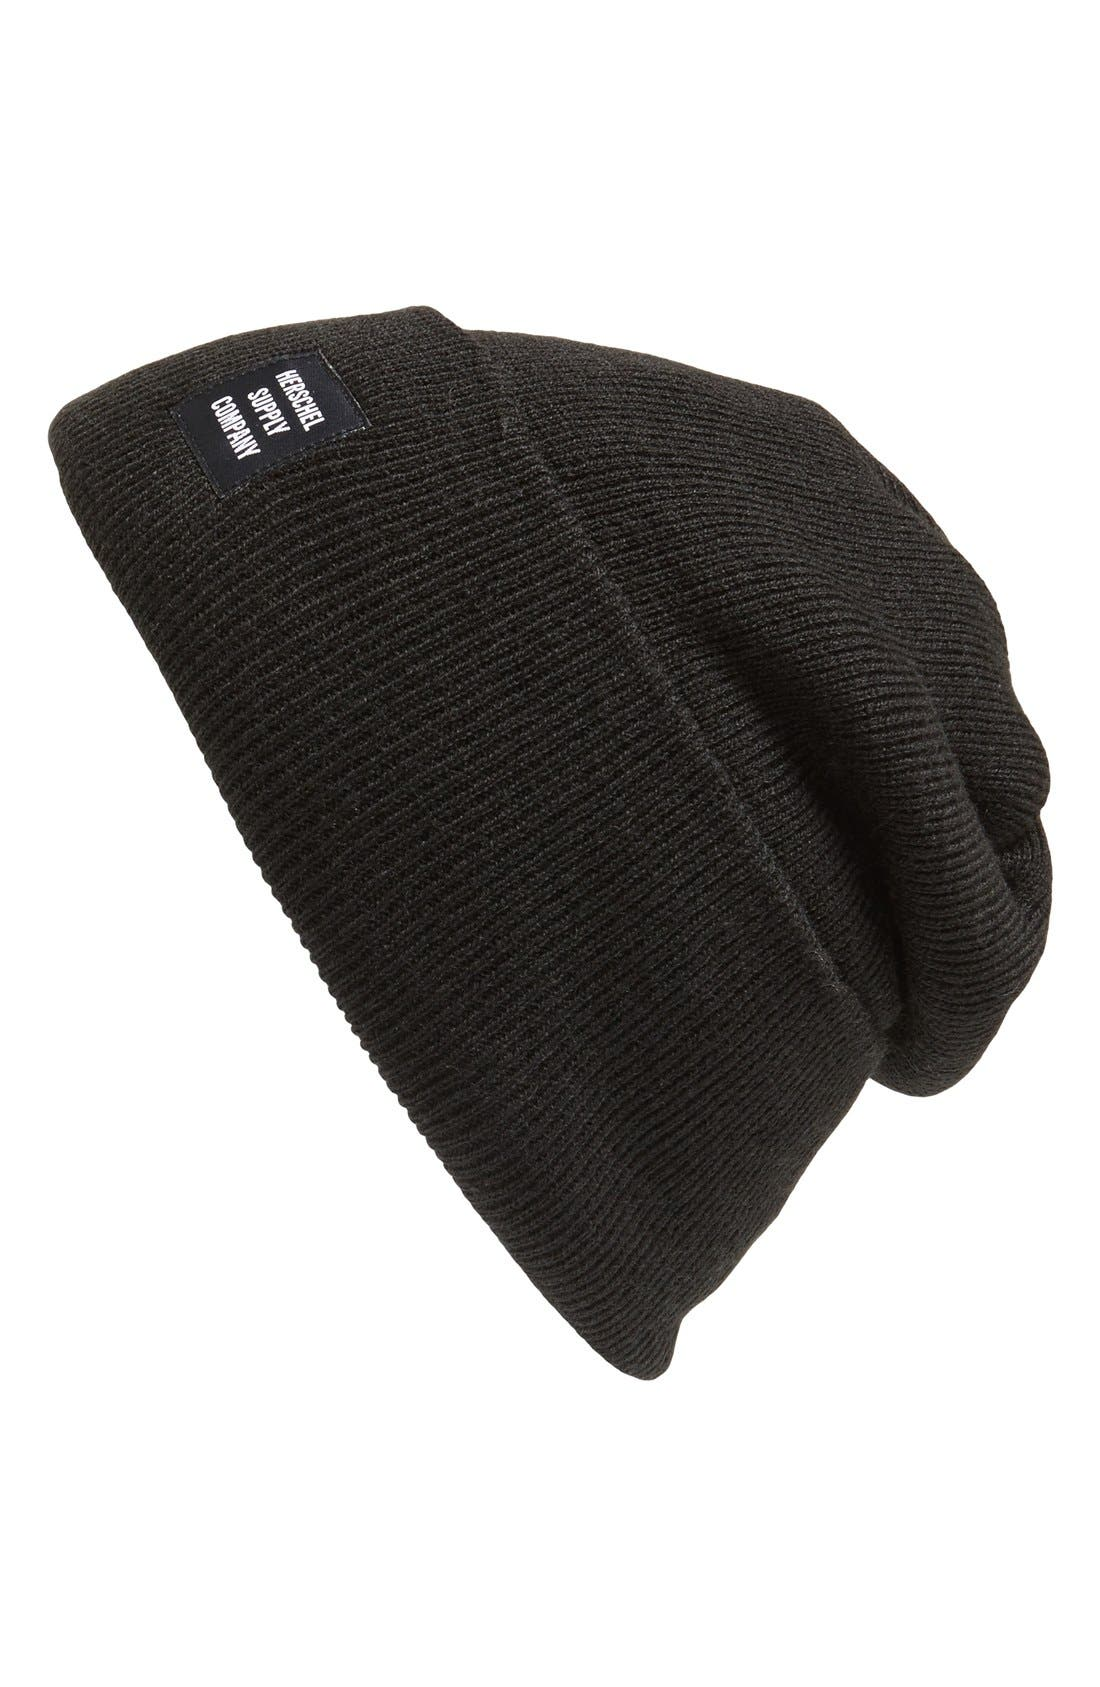 'Abbott' Knit Cap,                             Main thumbnail 1, color,                             001